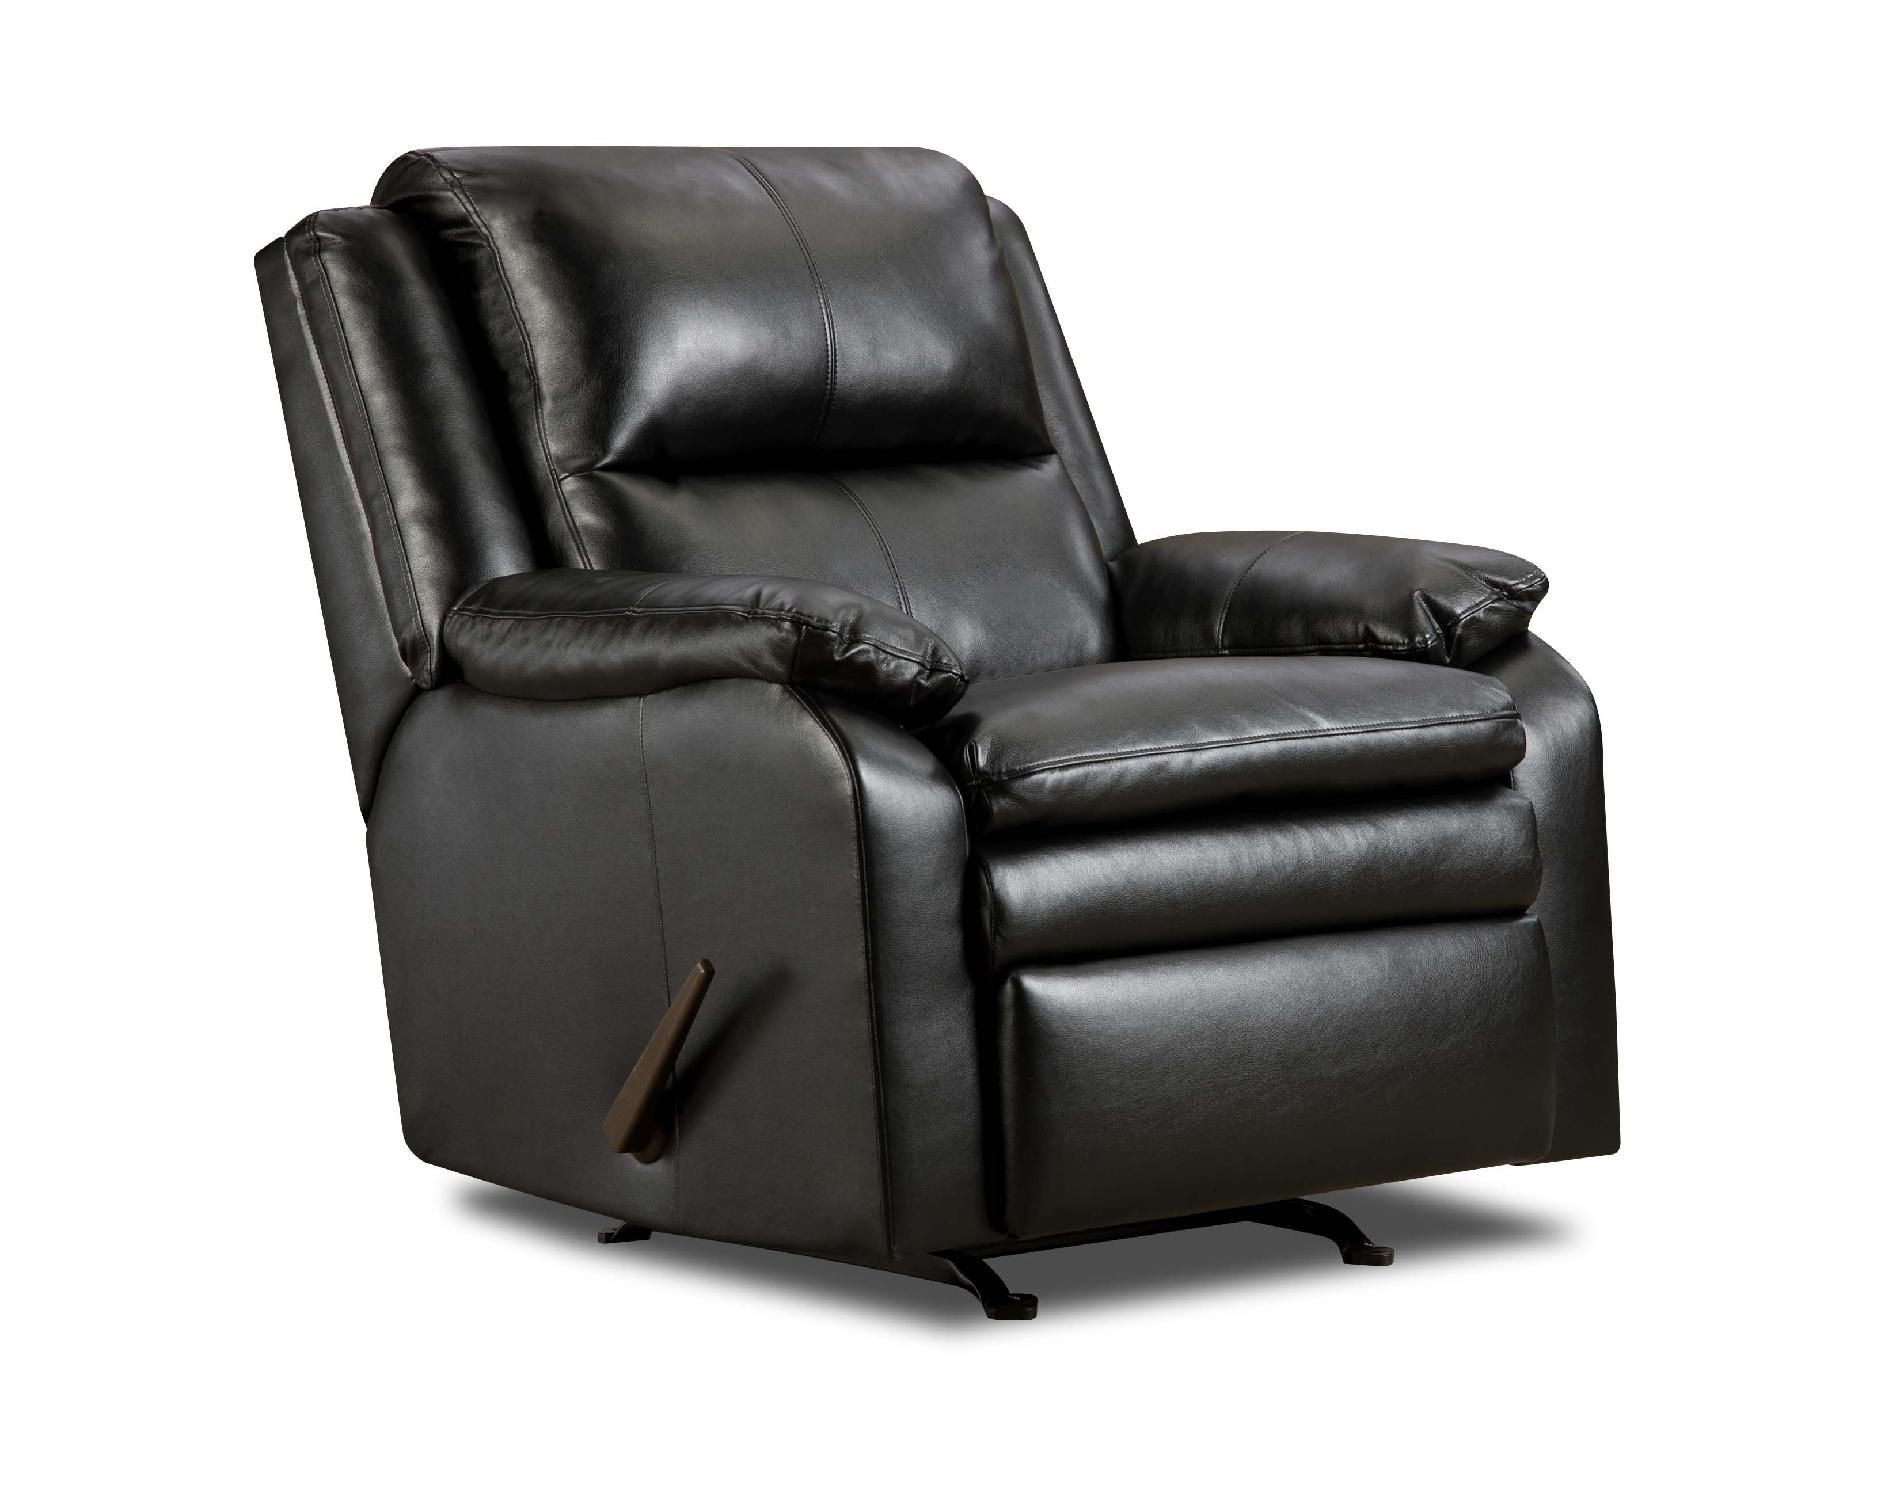 Simmons Baron Leather Rocker Recliner